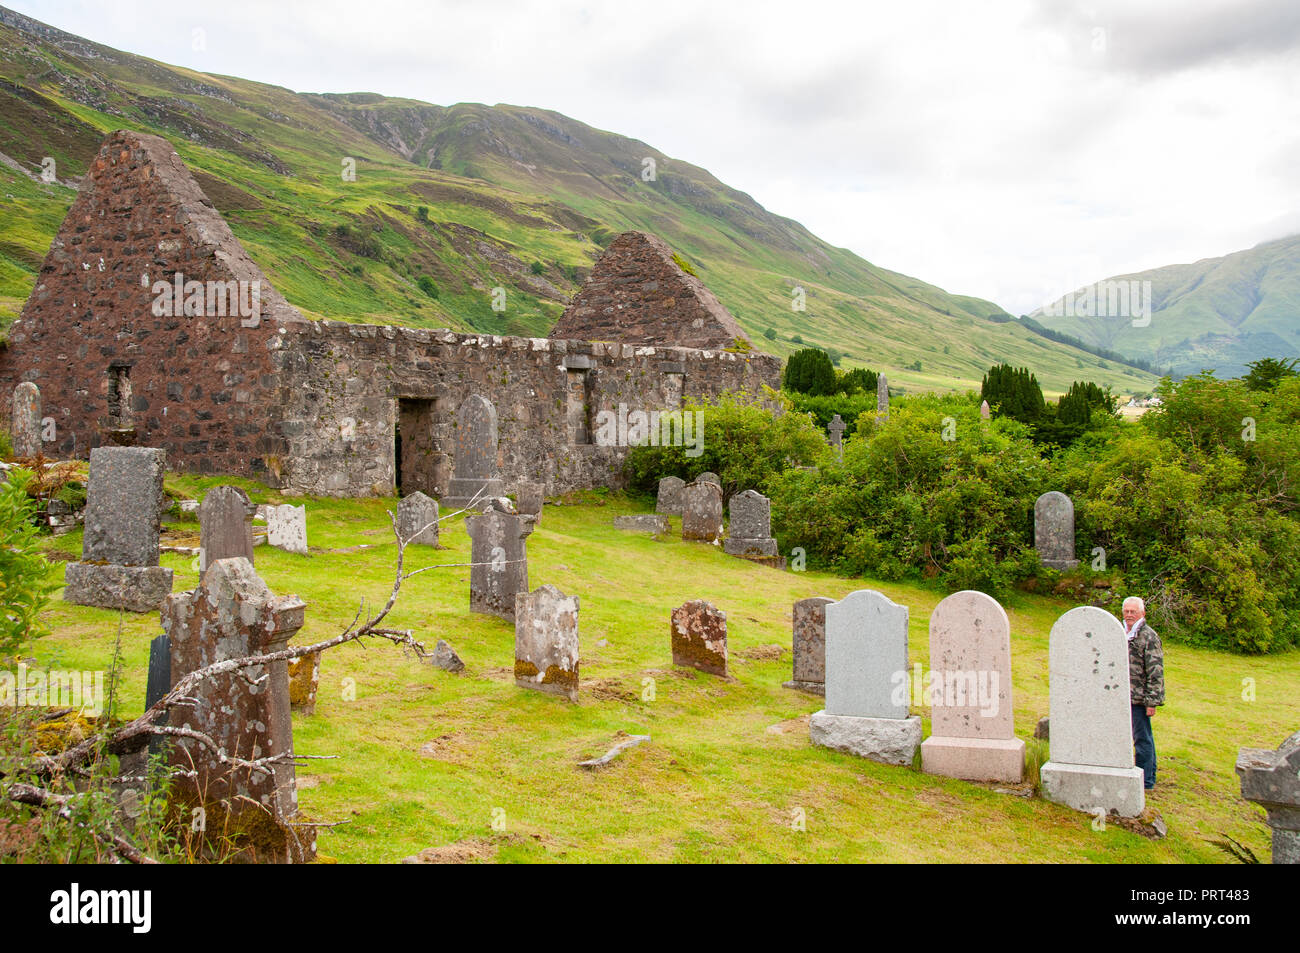 old man looking at a grave in crumbling stone ruins of barns, stone walls and old gravestones on a bank above still water, in the Scottish Highlands - Stock Image